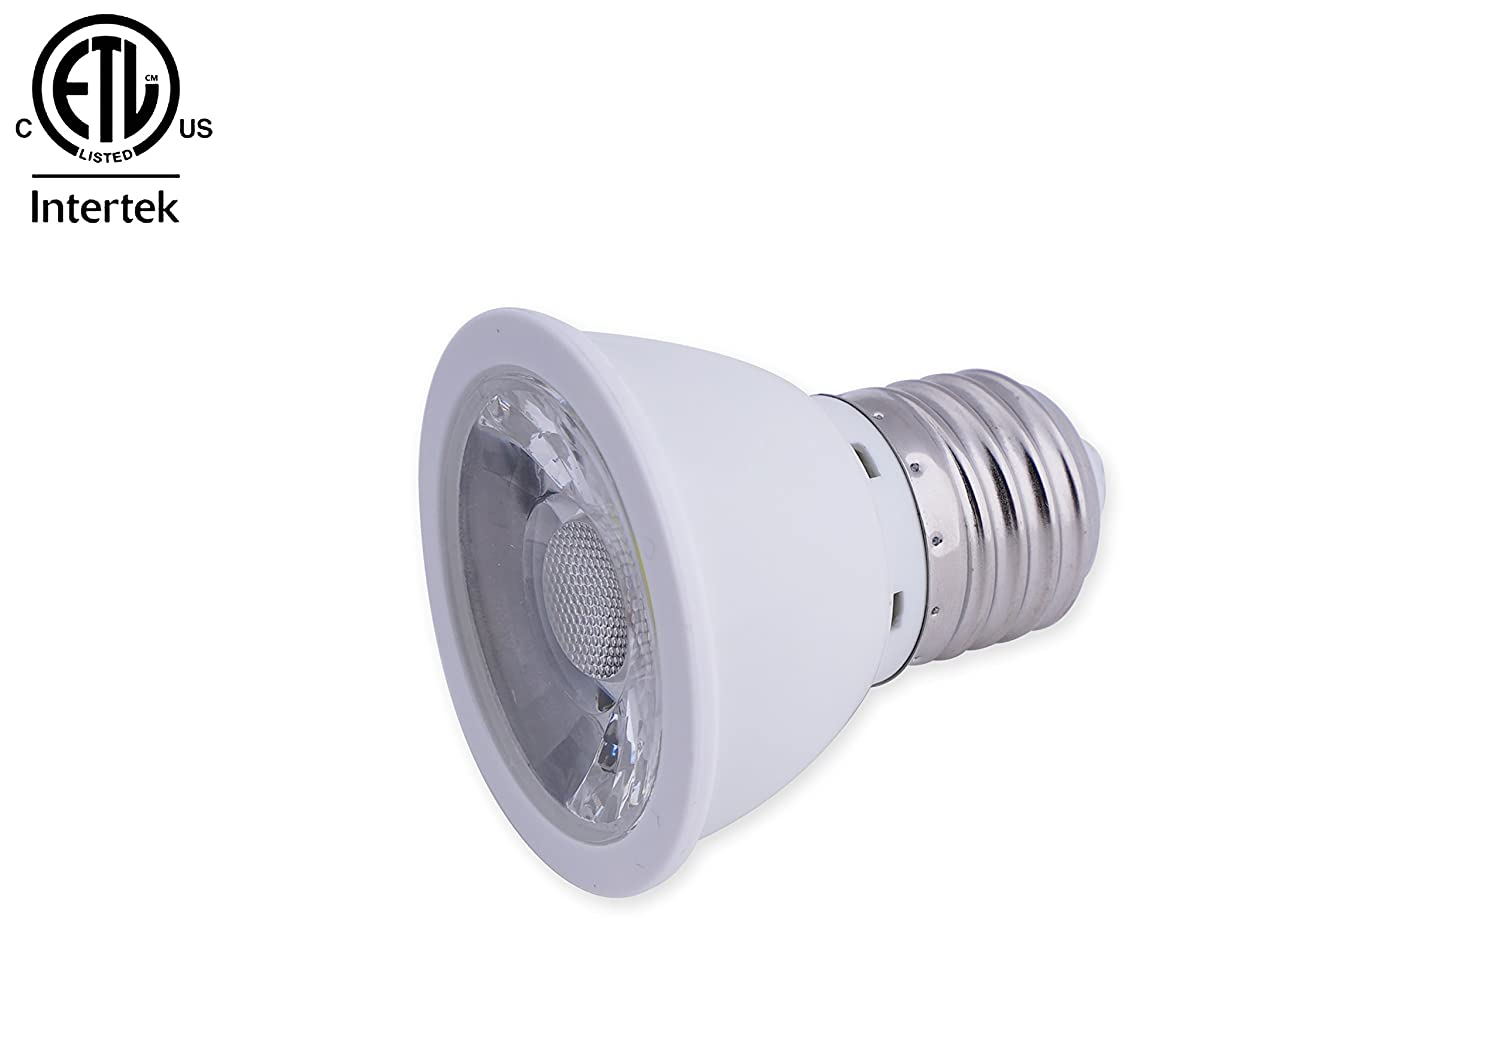 location area to for amazon light etl dp led barn year wet floodlight yard com intertek dawn photocell warranty daylight available listed included dusk outdoor dlc lighting